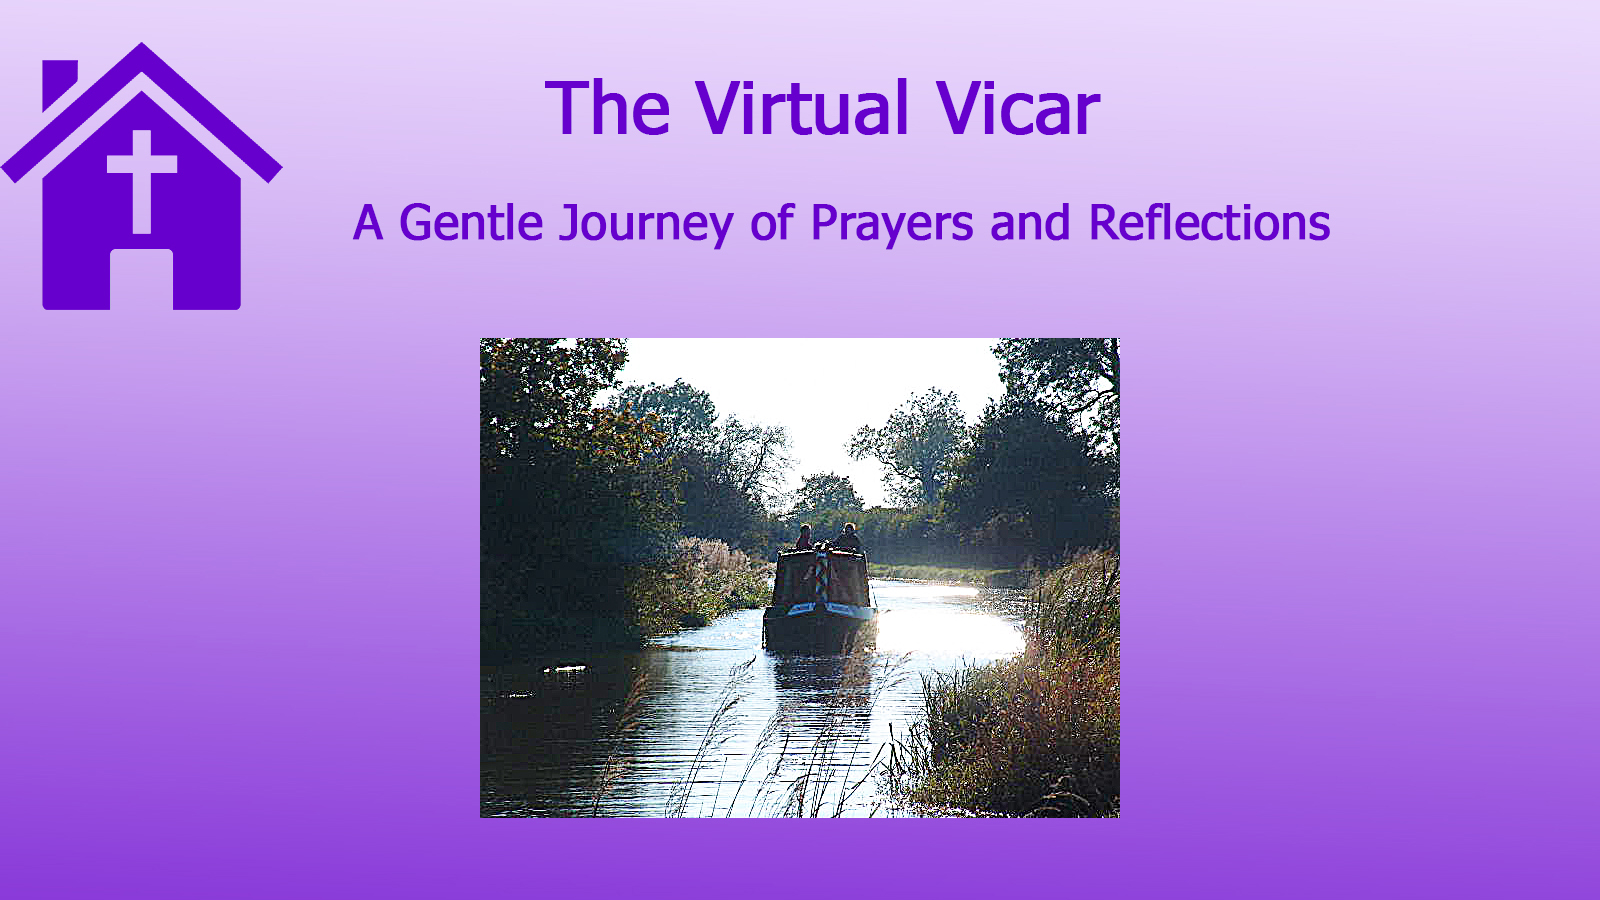 A Gentle Journey of Prayers and Reflections